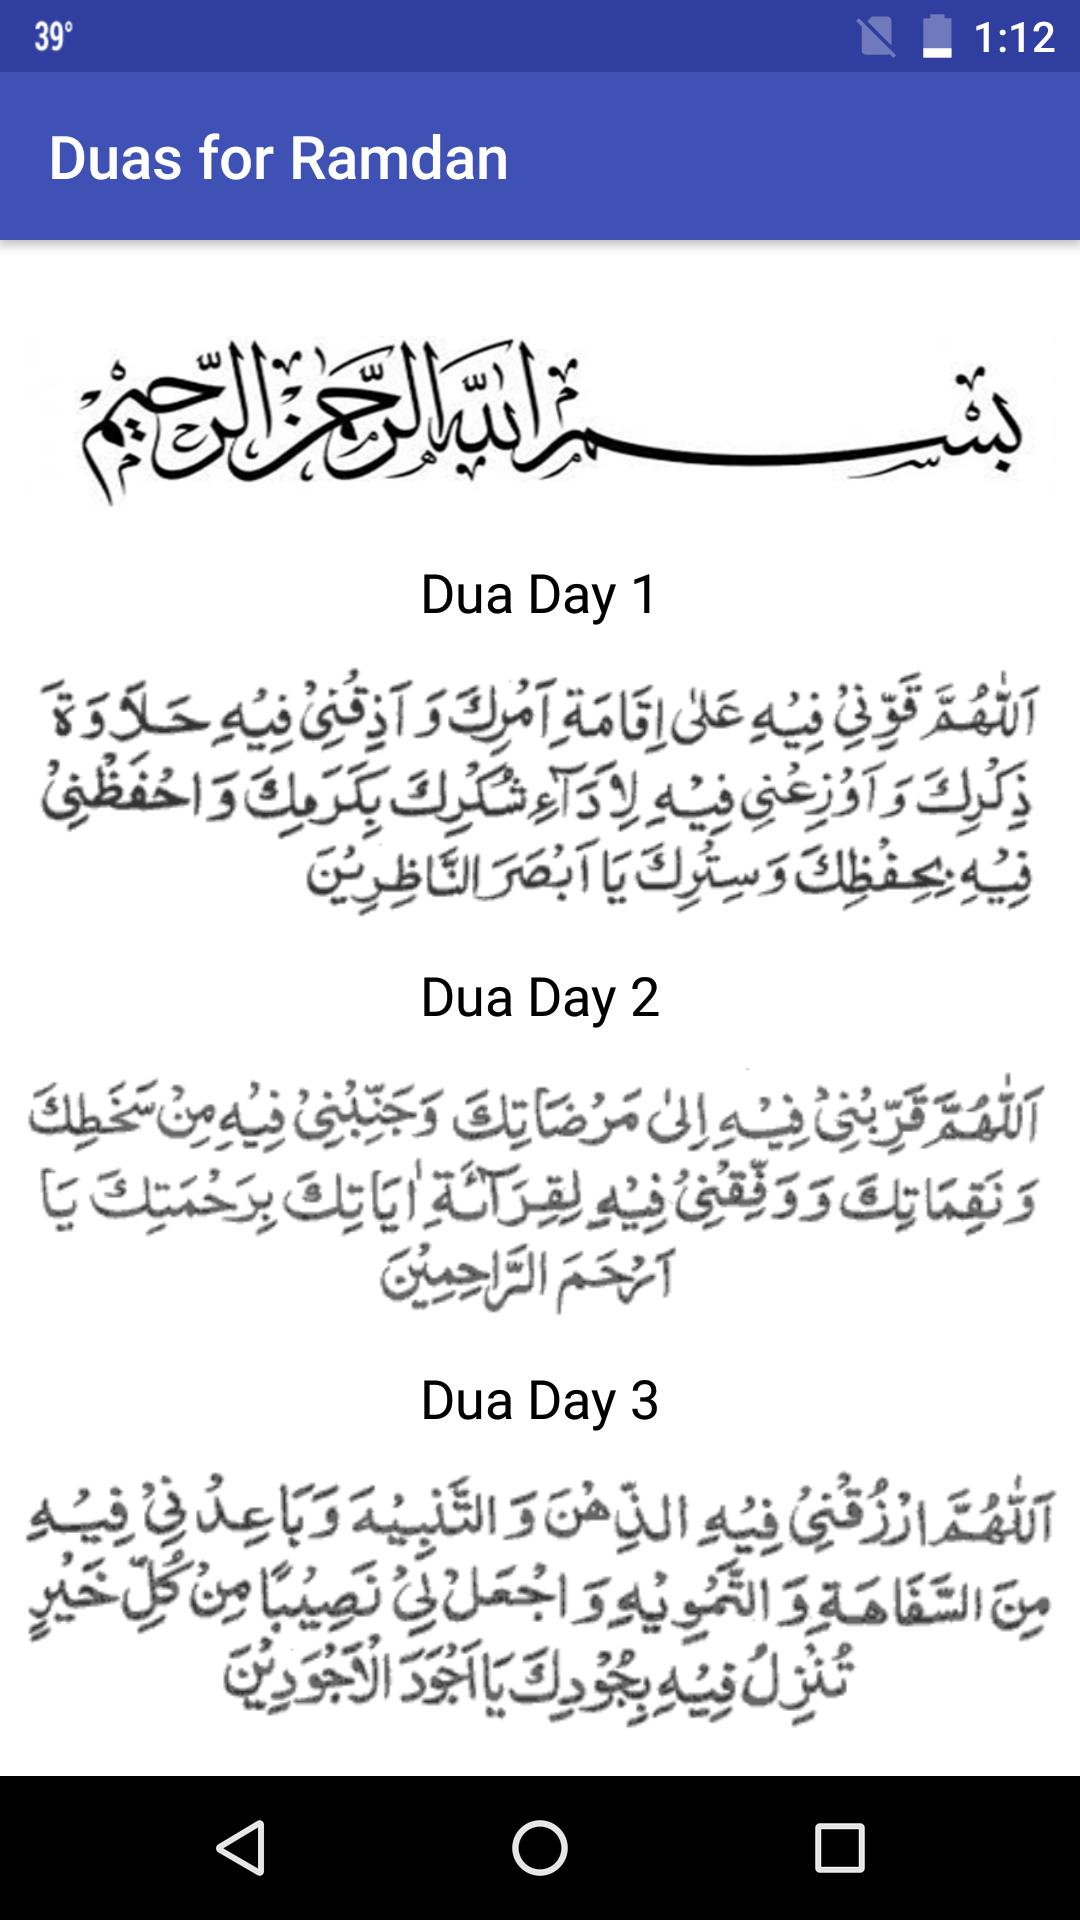 Daily Duas for Ramadan for Android - APK Download